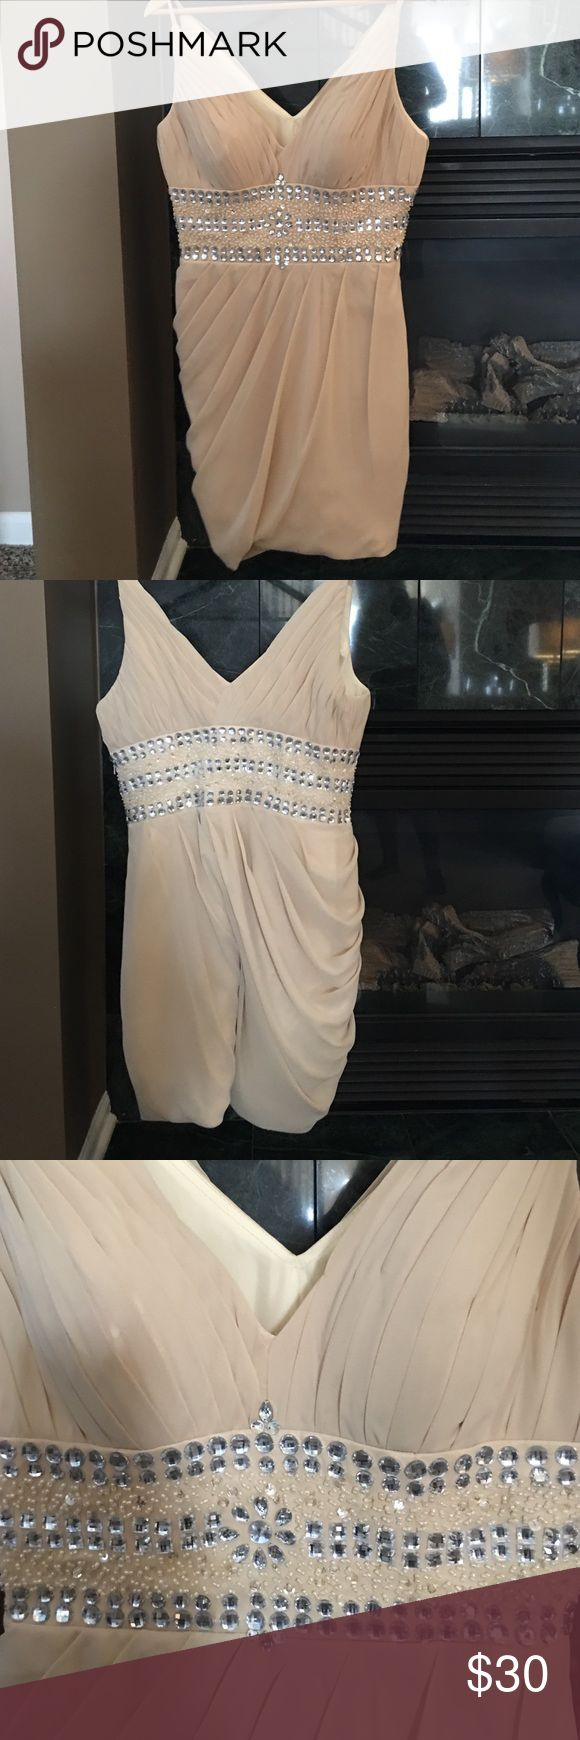 Nude cocktail dress size 8 Nude cocktail dress size 8. New never worn but no tags. Dylan Queen Dresses Midi